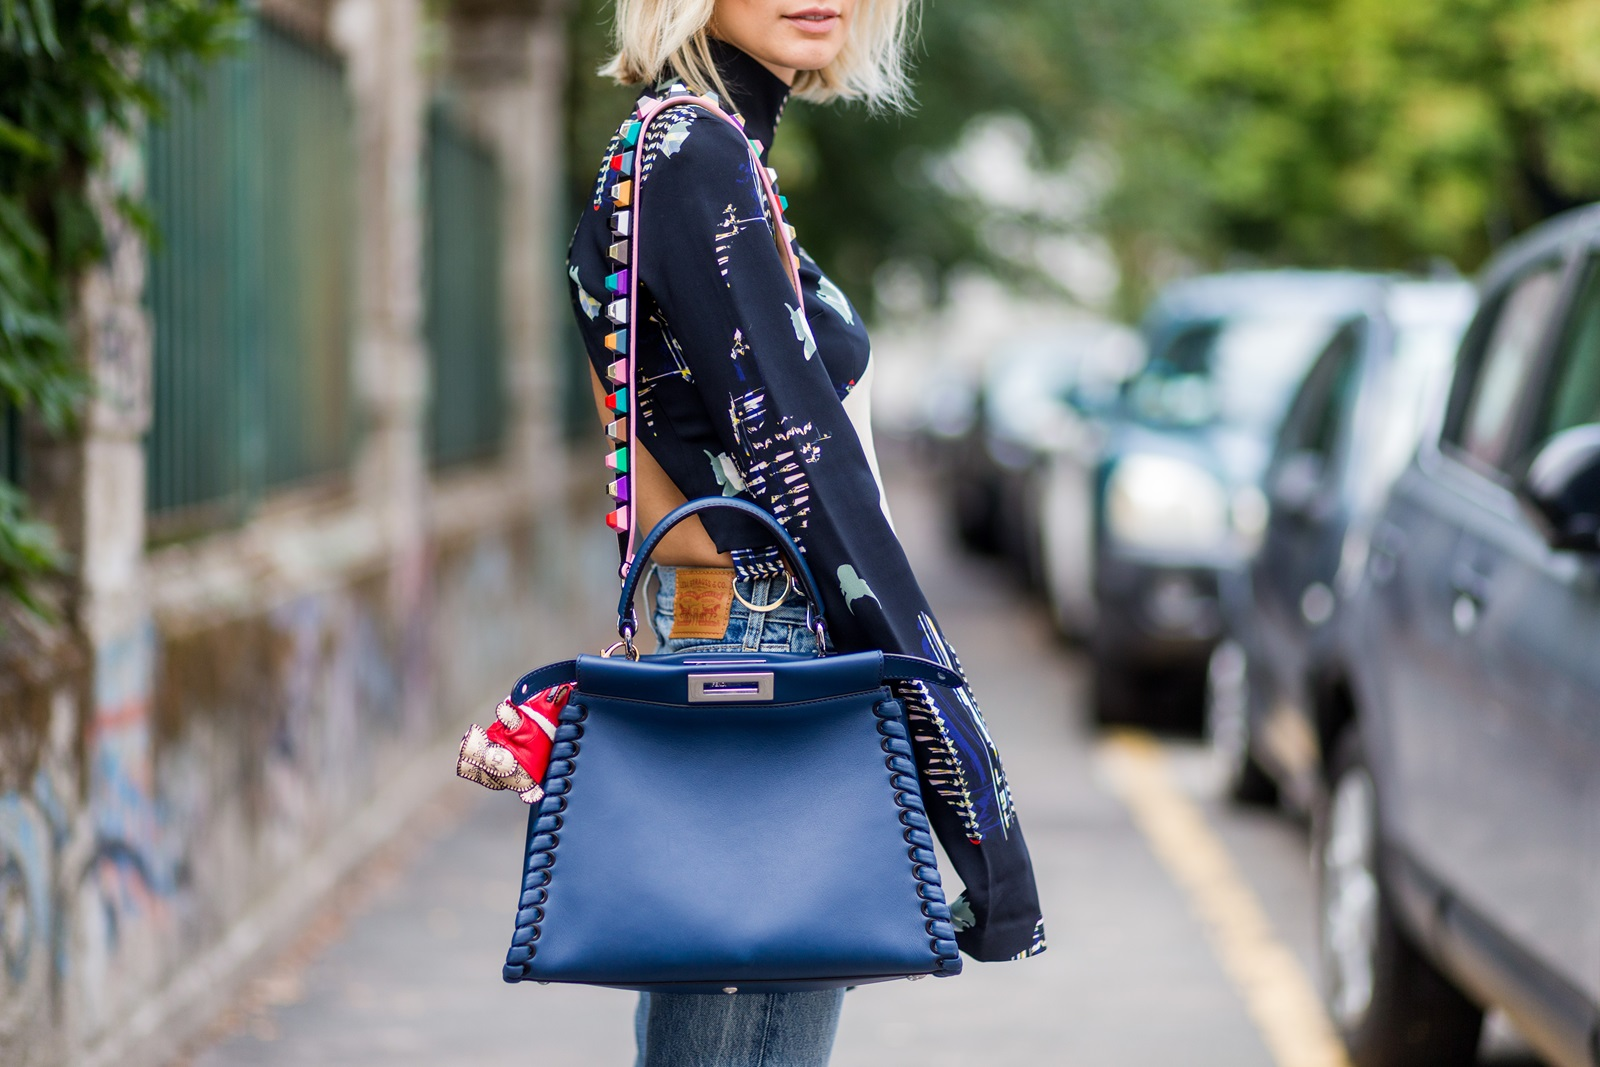 MILAN, ITALY - SEPTEMBER 22: Lisa Hahnbeuck (@lisarvd) wearing Lala Berlin Backless Cropped Silk Top with Long Sleeves, jeans Levi's Wedgie, bag Fendi Peekaboo outside Fendi during Milan Fashion Week Spring/Summer 2017 on September 22, 2016 in Milan, Italy. (Photo by Christian Vierig/Getty Images) *** Local Caption *** Lisa Hahnbeuck